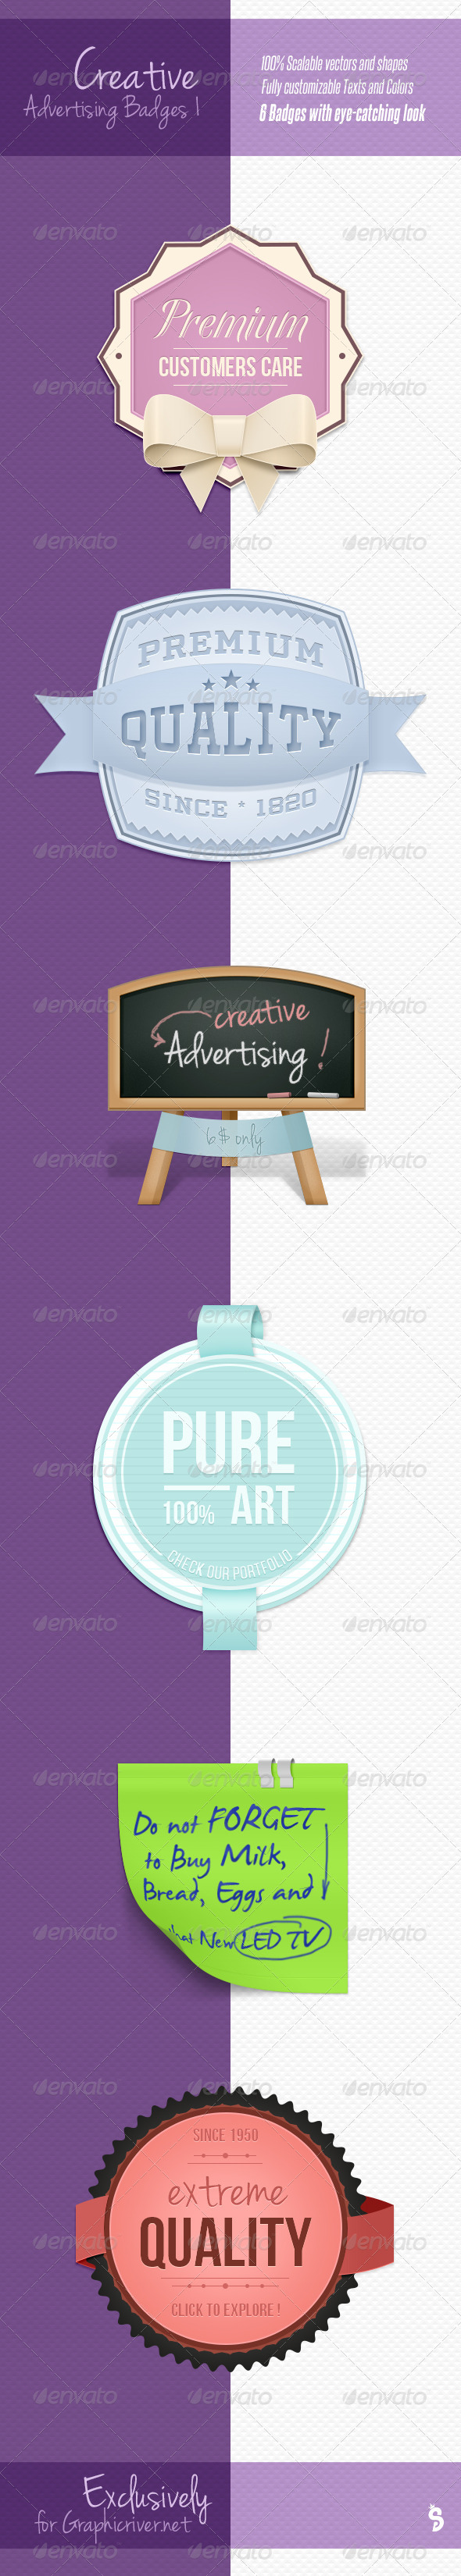 GraphicRiver Creative Advertising Badges 1 6615023